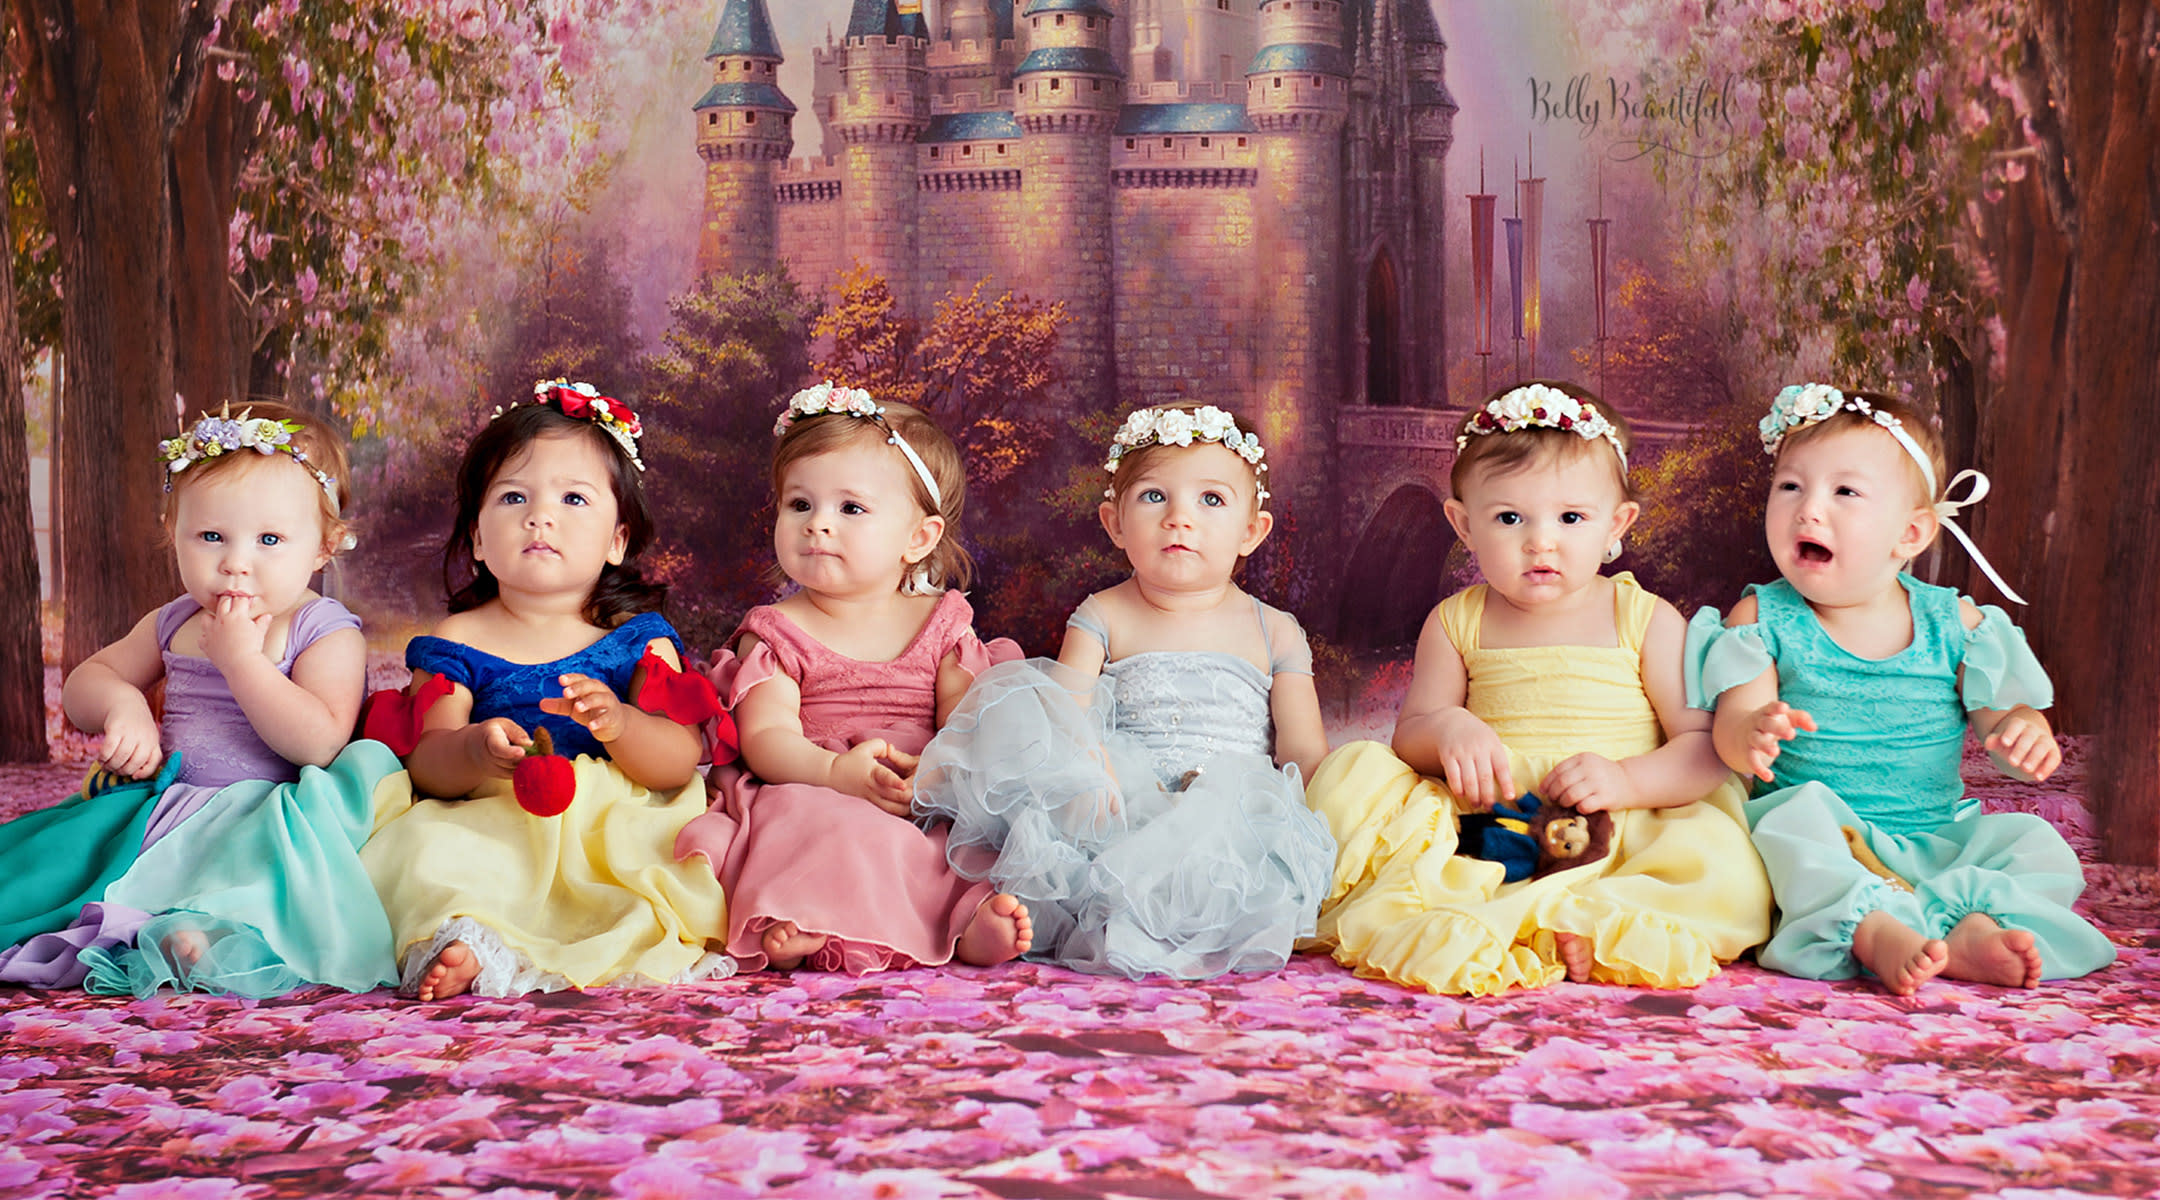 Disney princess babies star in second photoshoot this time as toddlers